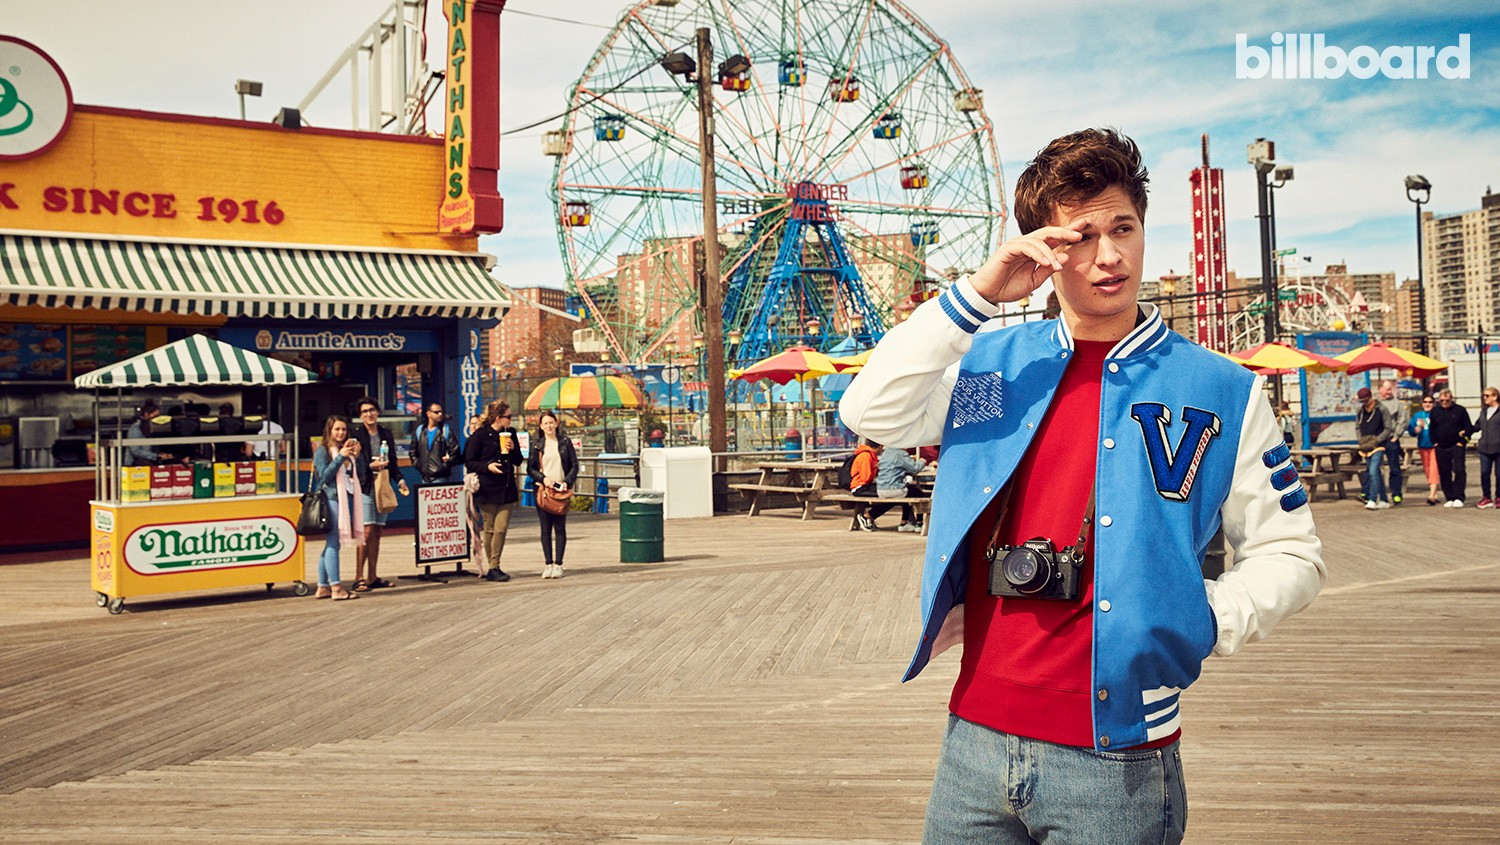 Ansel Elgort photographed May 12 at Coney Island in Brooklyn.